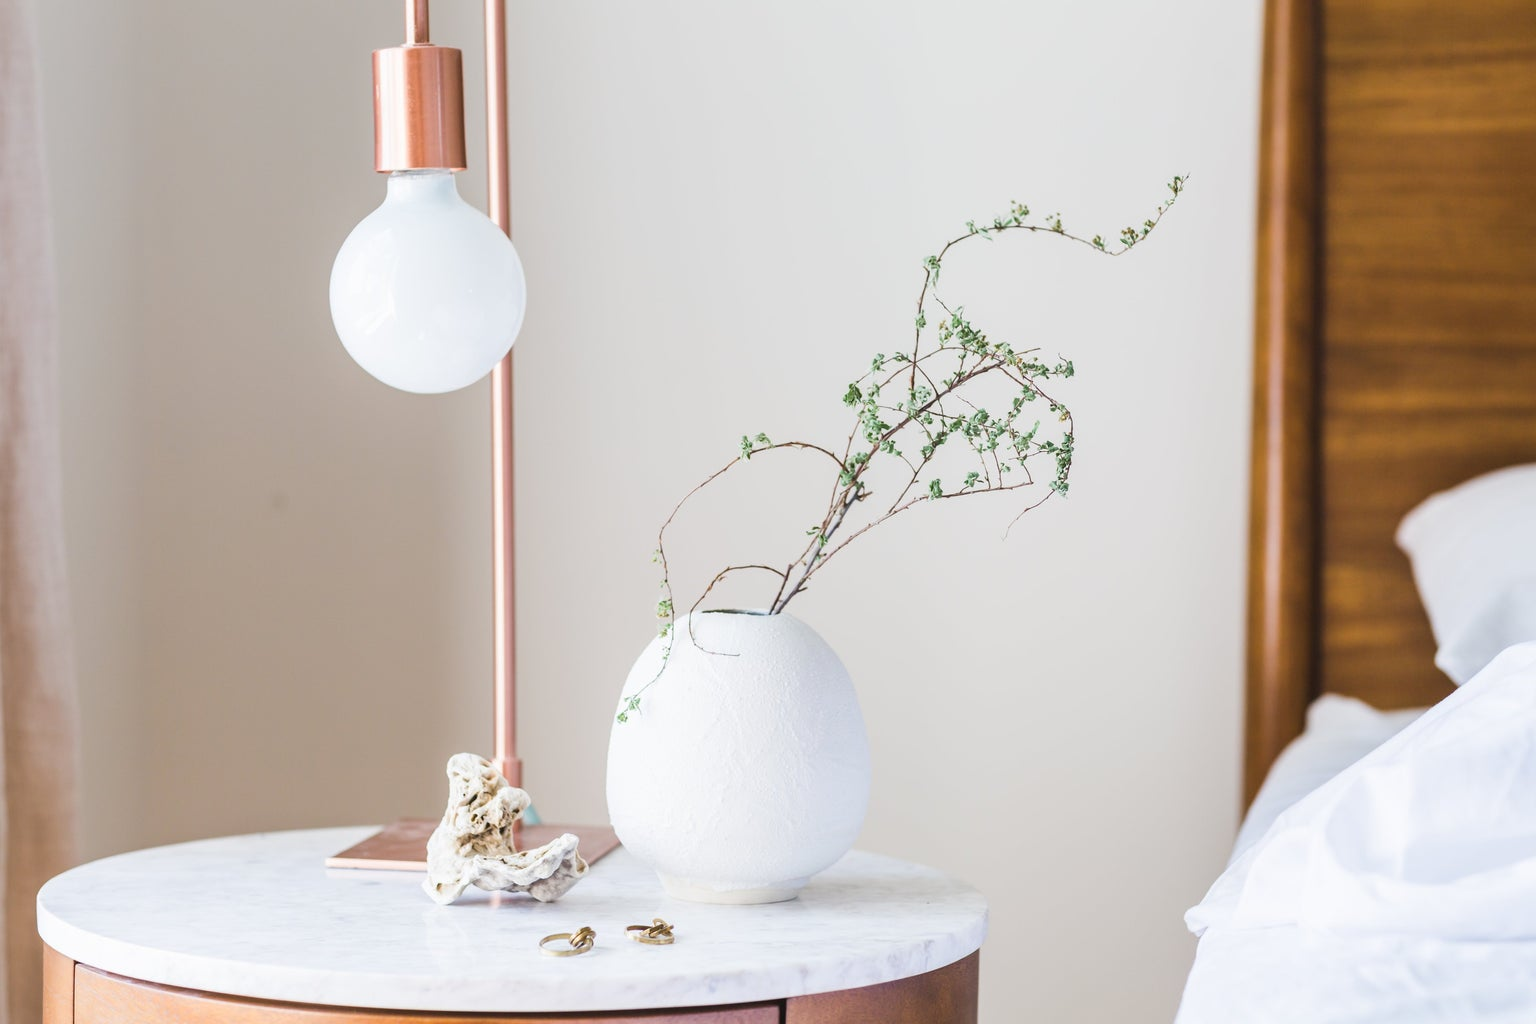 white and rose gold bedside table lamp next to bed with plant